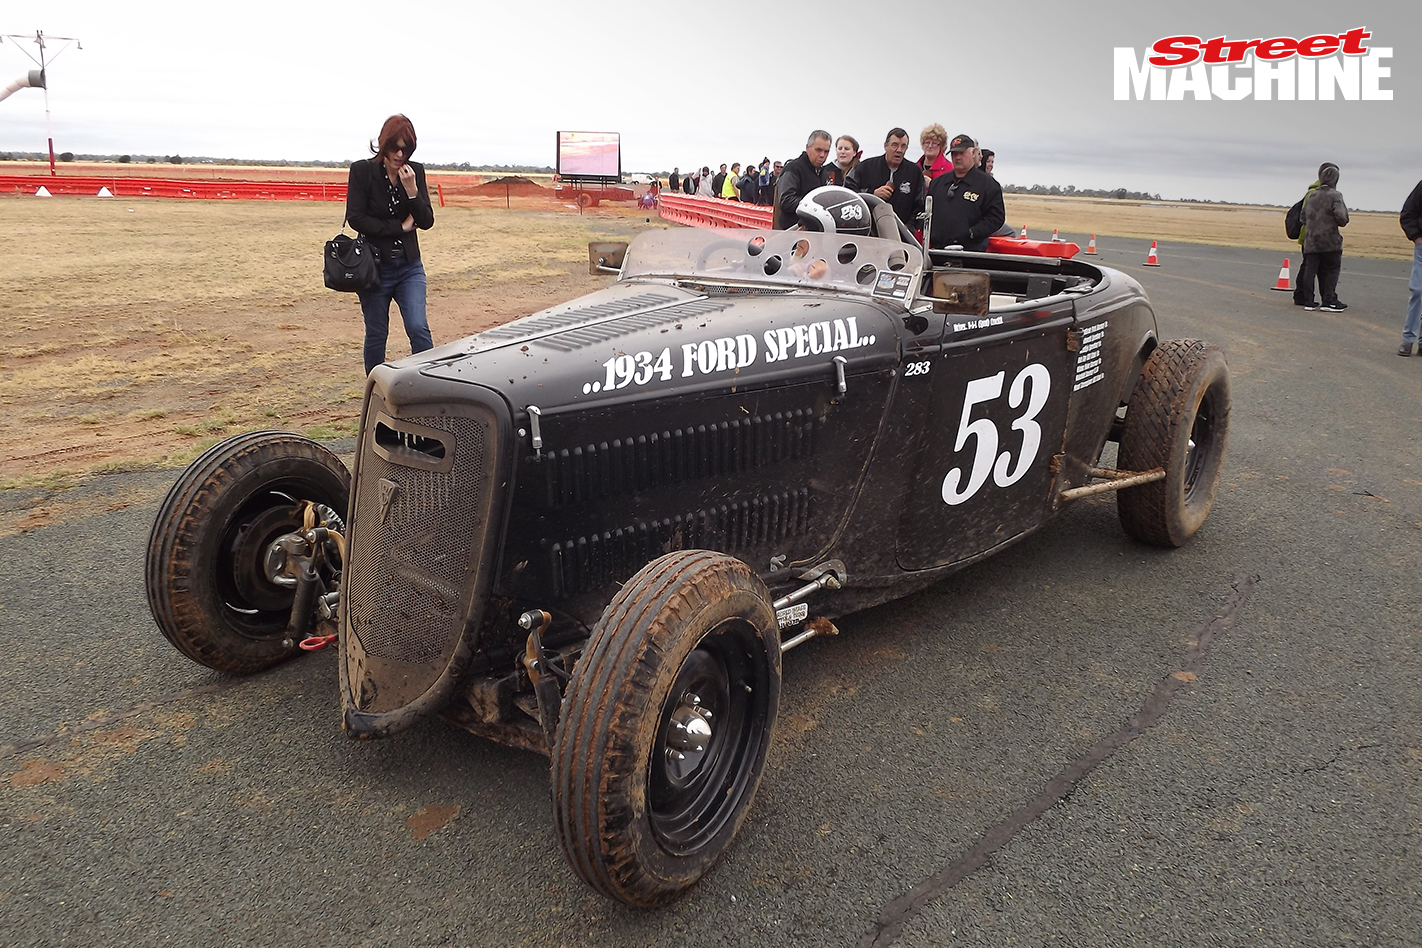 34 Ford Roadster Dirt Racer